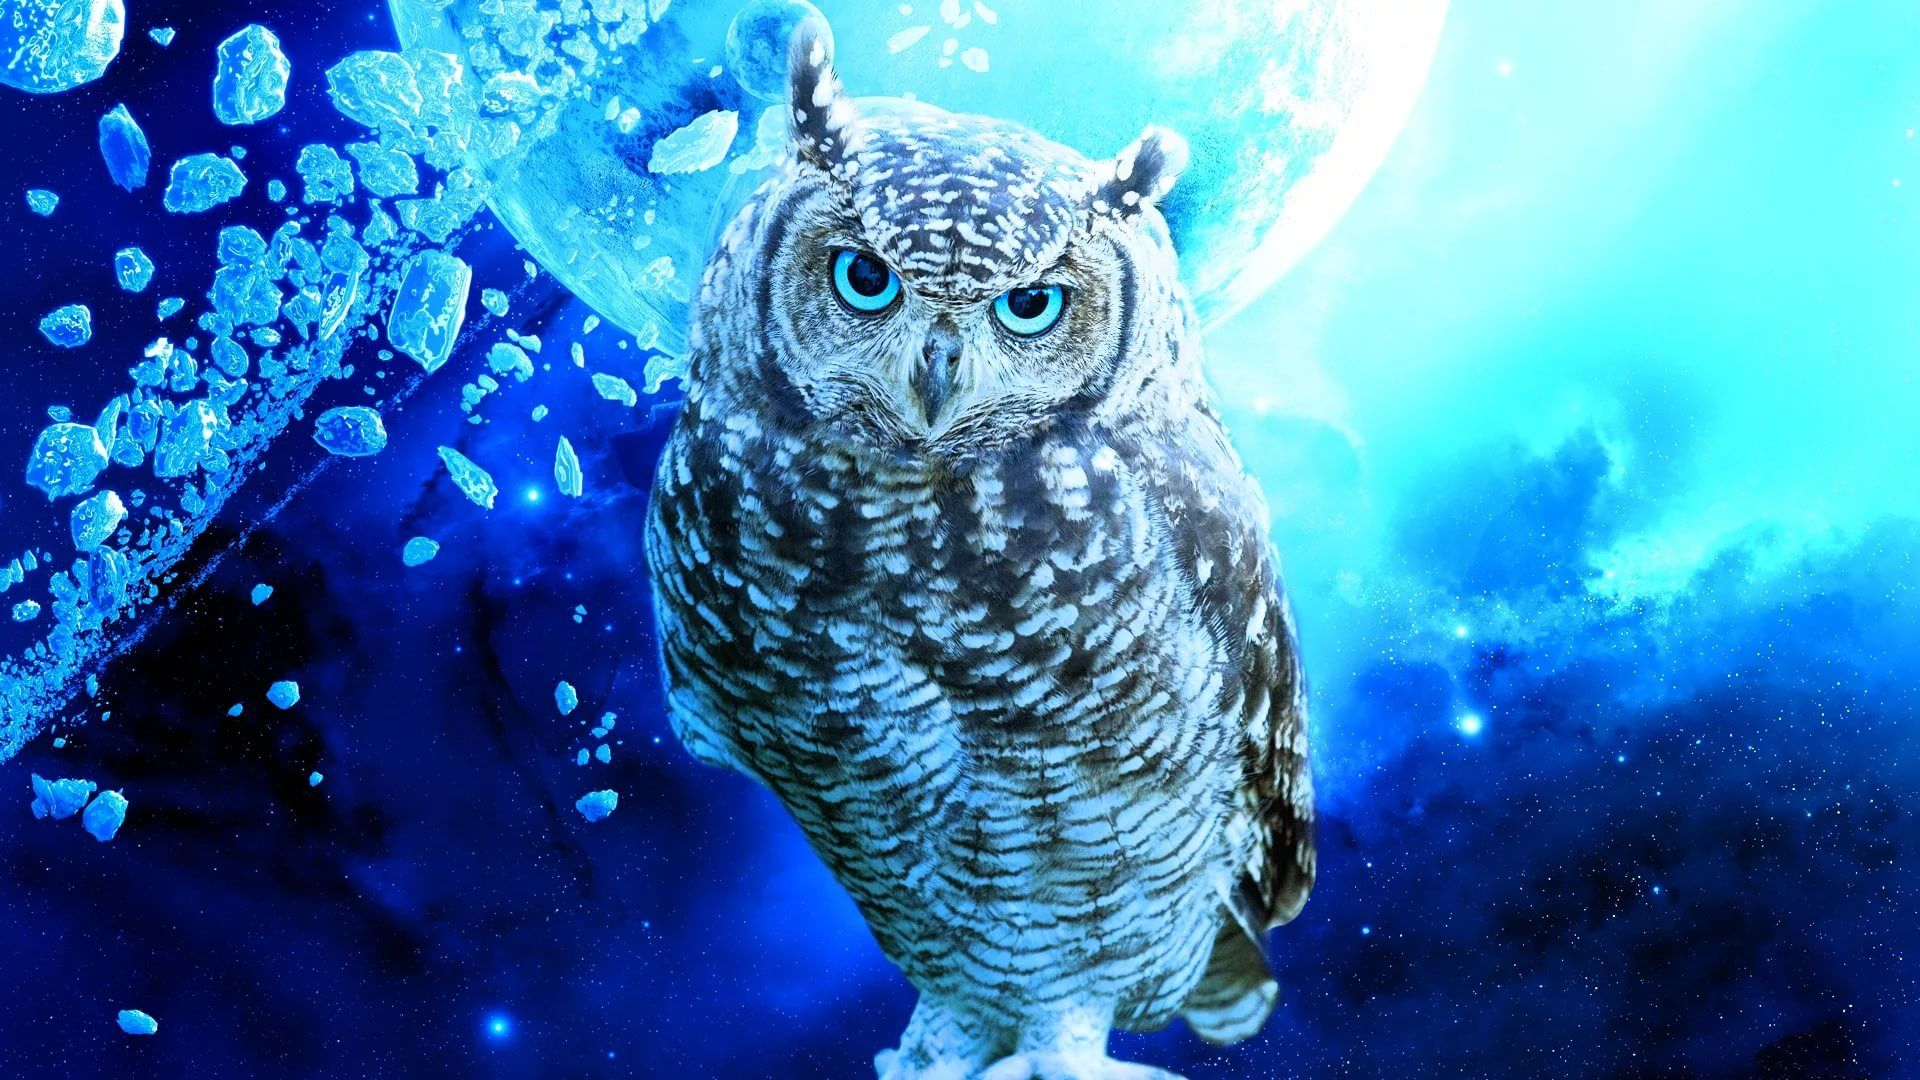 Cute Owl download free wallpaper image search